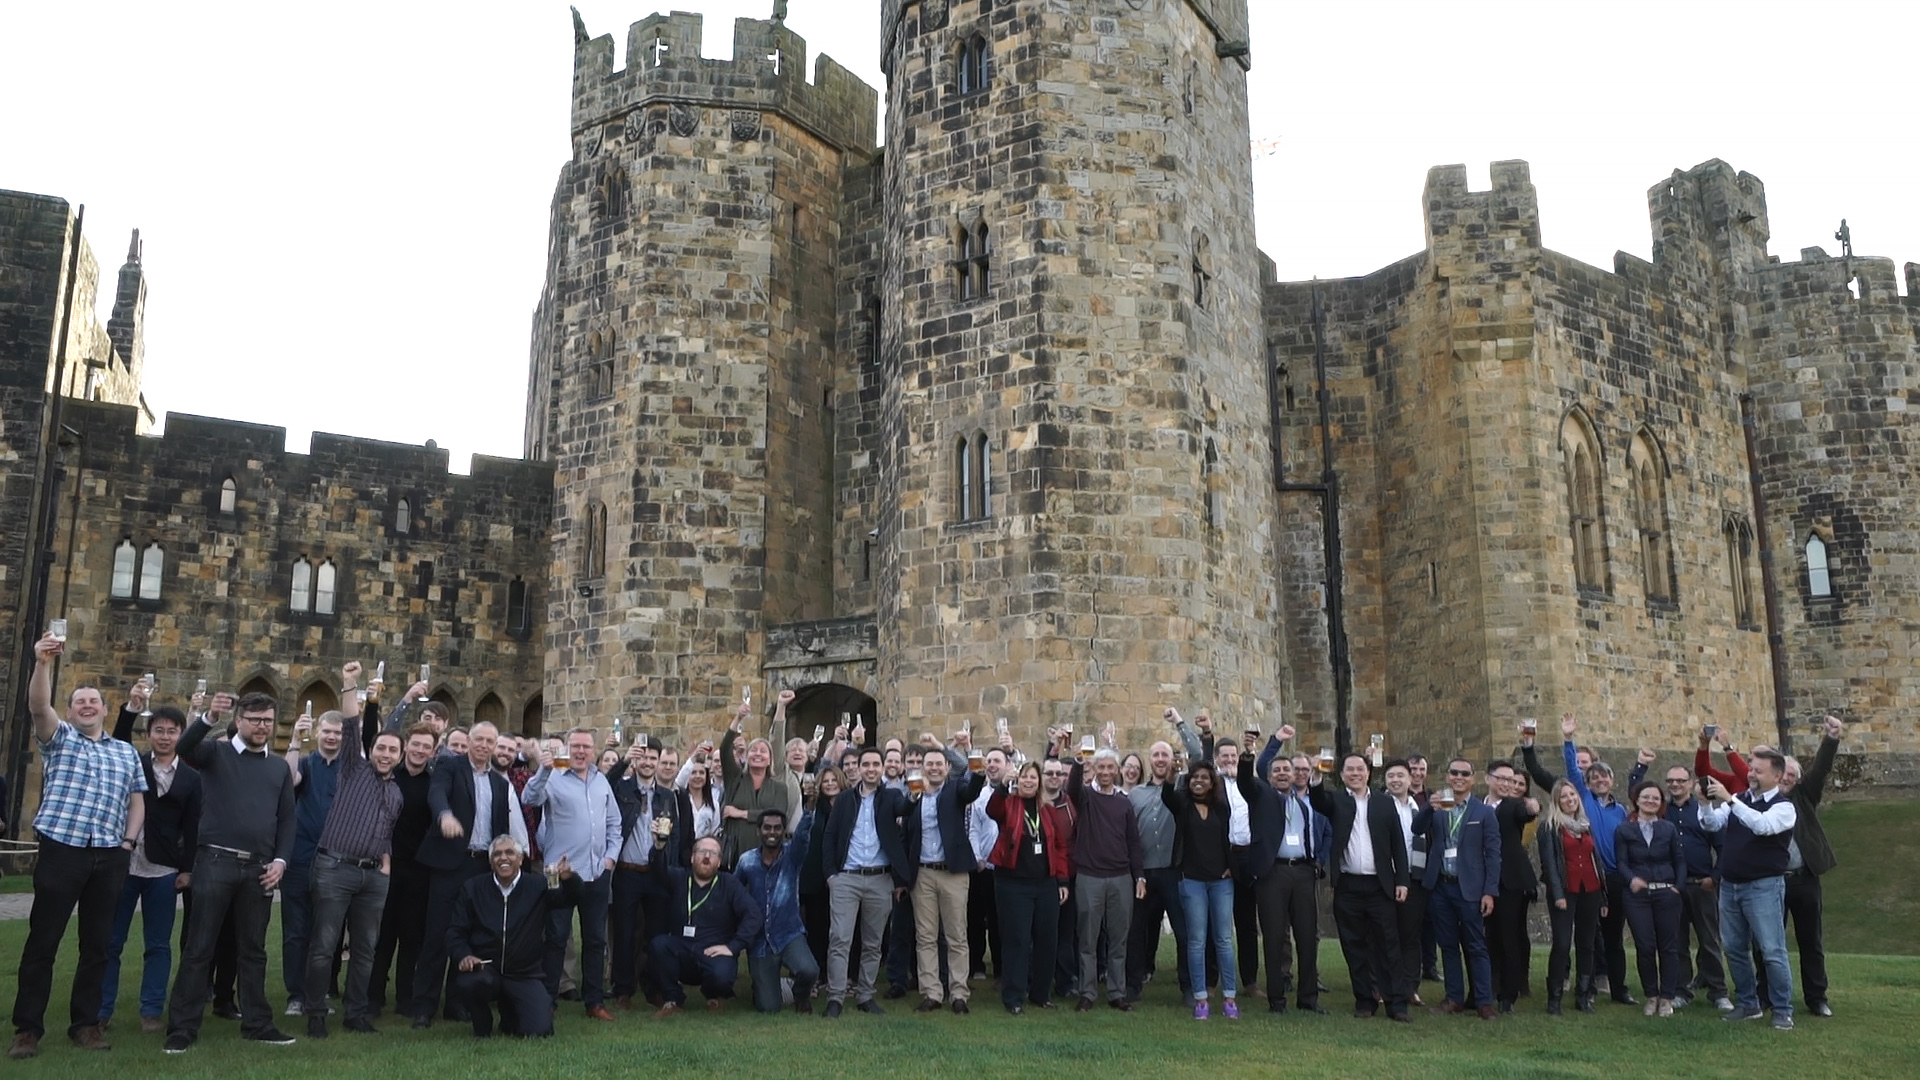 Group of people in front of Alnwick Castle